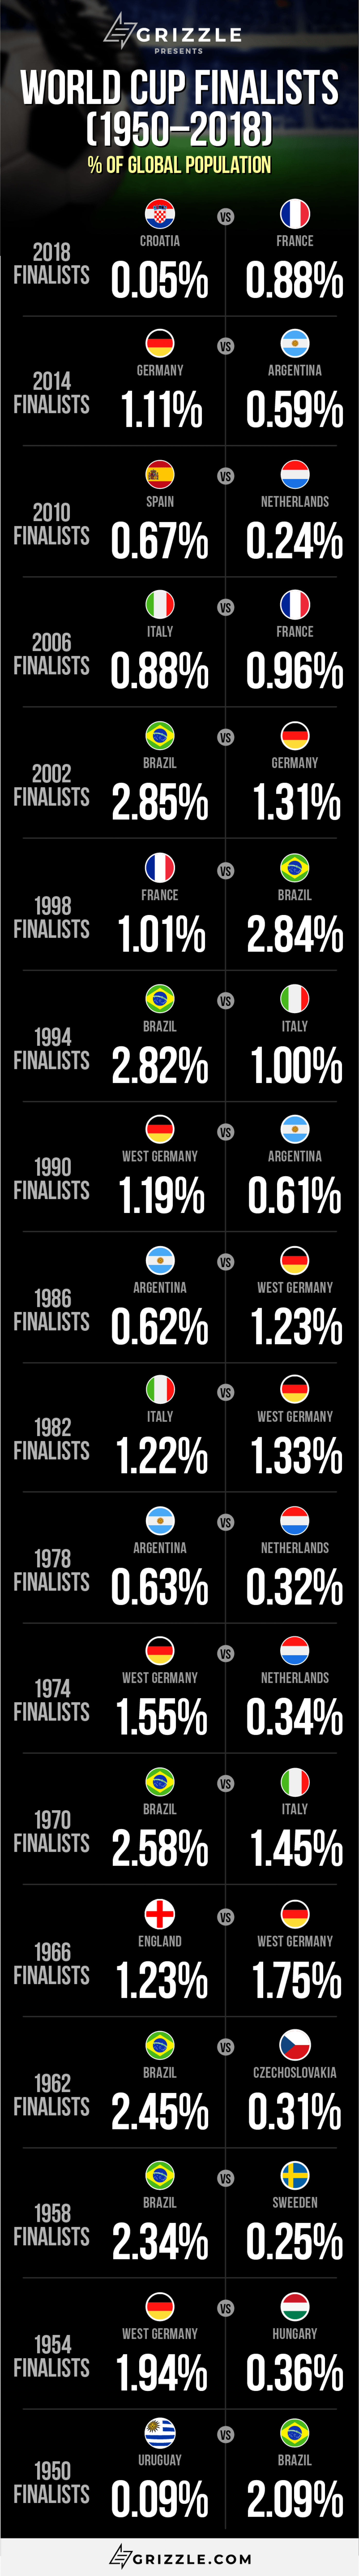 World Cup Finalists as % of Population Infographic